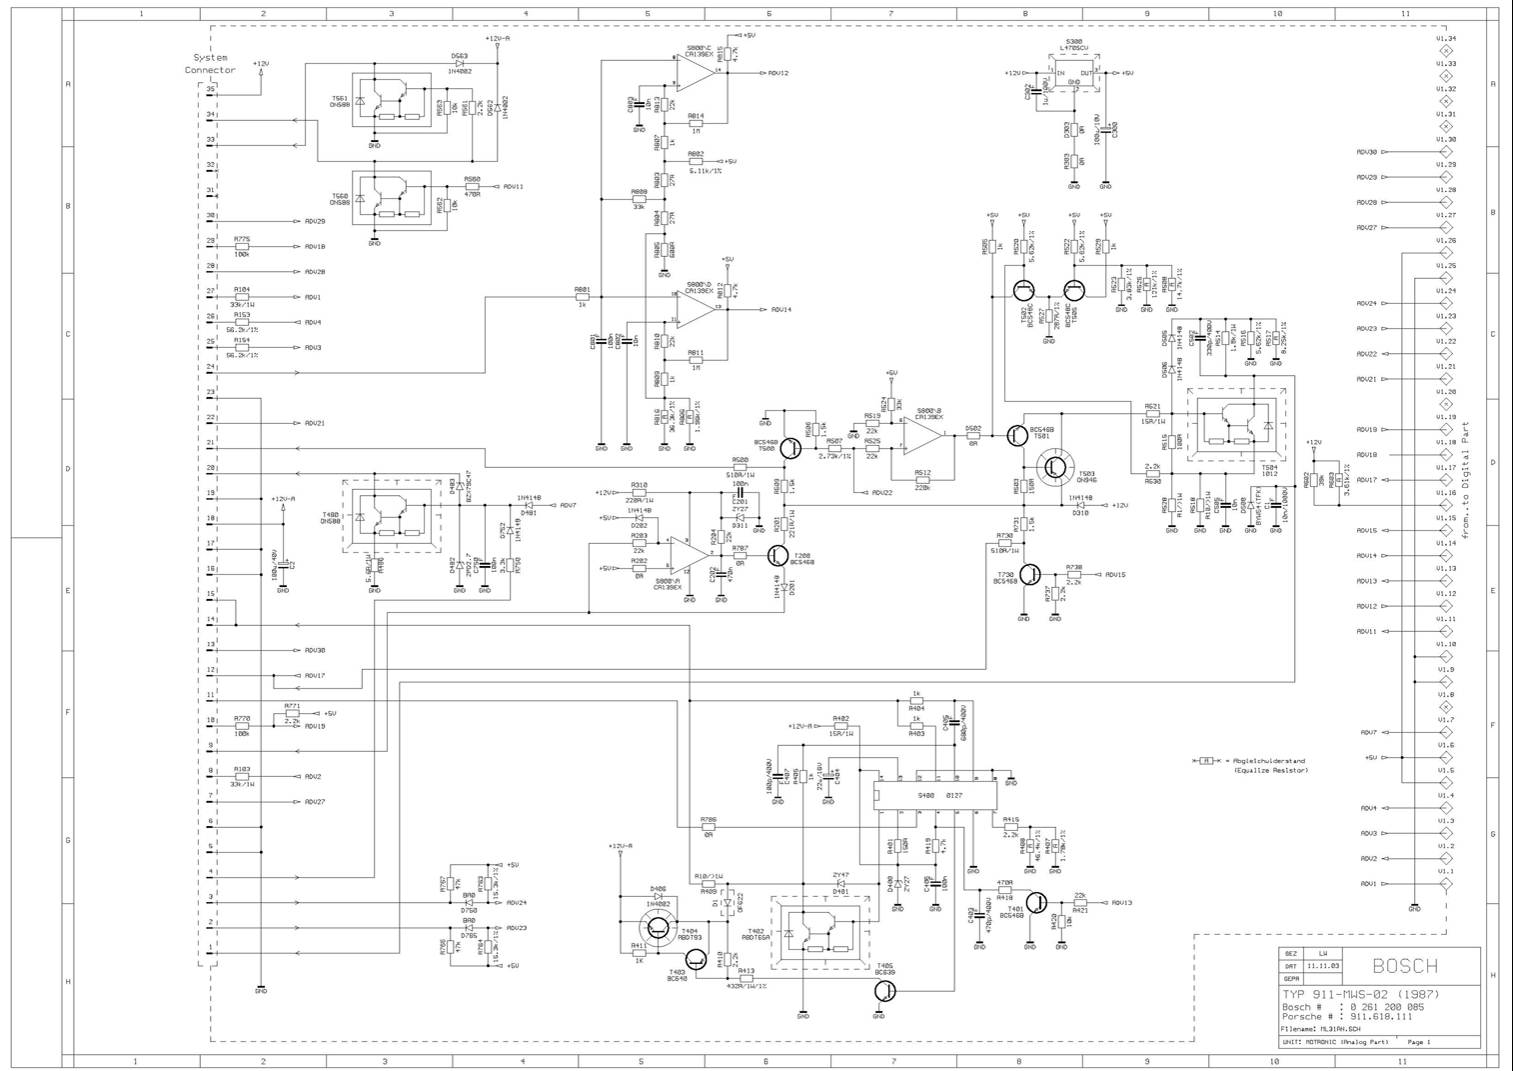 dme na 1 dme wiring diagram normally aspirated 944 944 s2 wiring diagram at soozxer.org